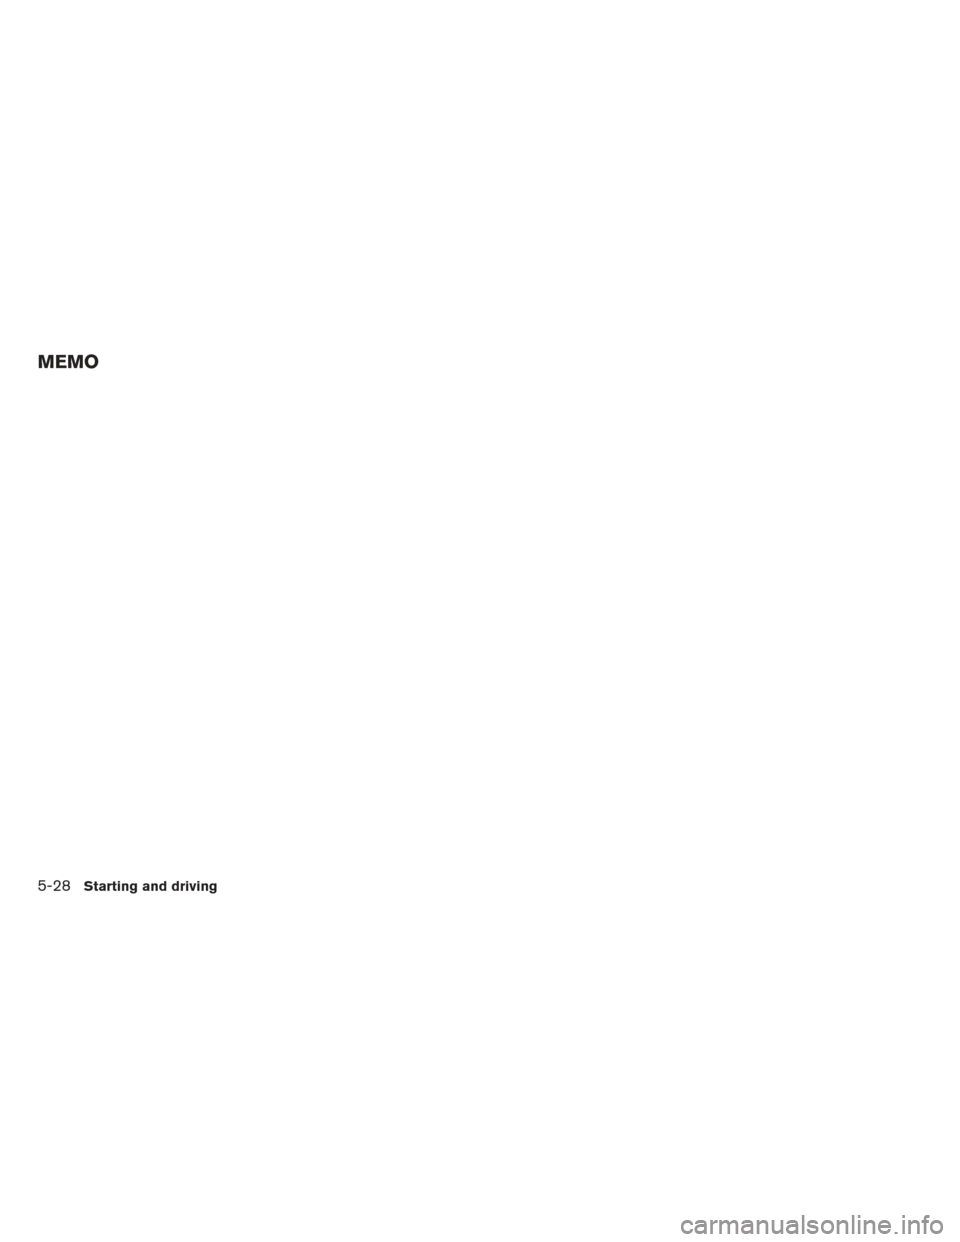 NISSAN MAXIMA 2012 A35 / 7.G Owners Manual MEMO 5-28Starting and driving